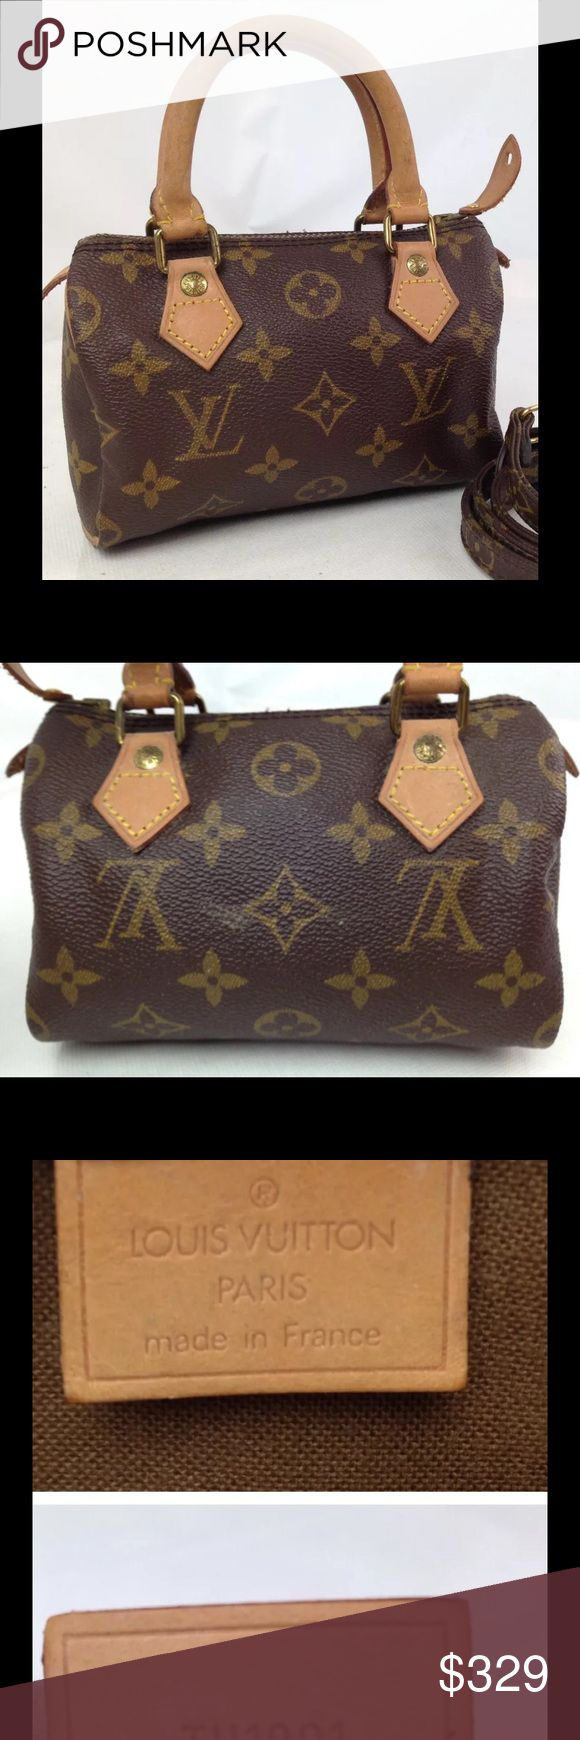 Authentic Louis Vuitton Mini Speedy nice and cute! Strap in separate listing. Authentic Louis Vuitton Speedy Mini. Nice inside and out and no damage! Special Bundle do not buy Louis Vuitton Bags